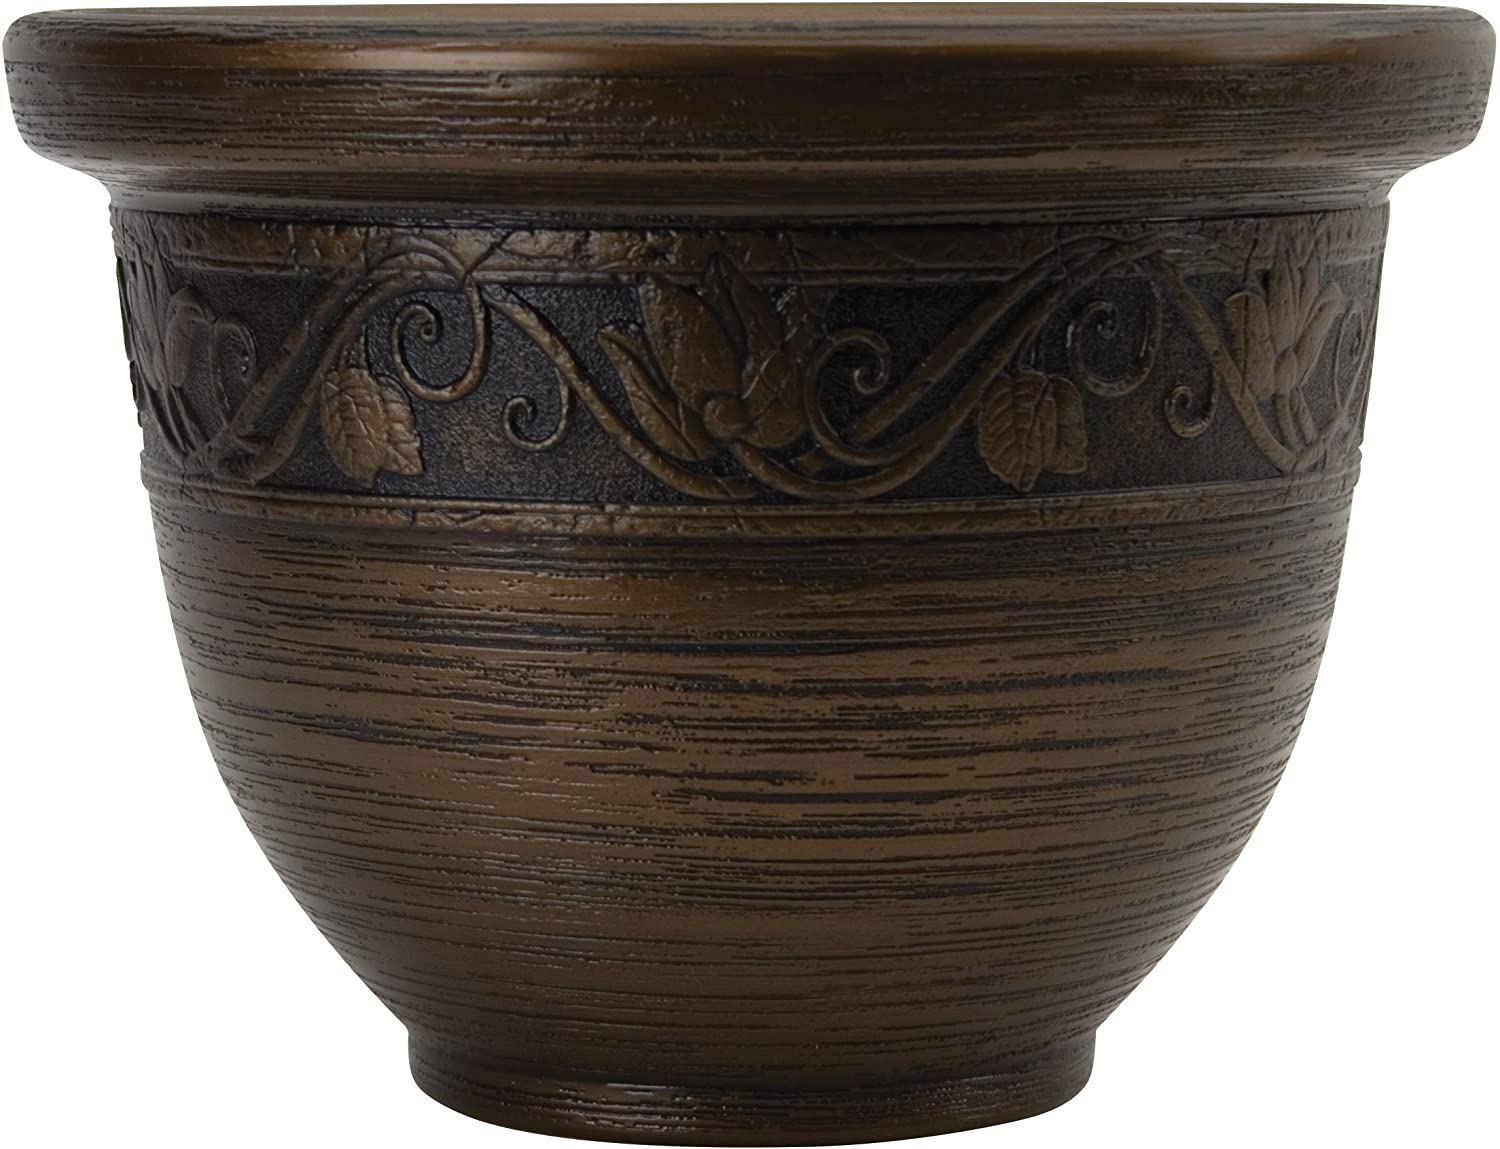 Listo Round Resin Planter - The HC Companies | 9-Inch Decorative Glaze Resin Pottery Flower Pot Planters for Indoor/Outdoor Plants | Celtic Bronze (ZEA09001P54)